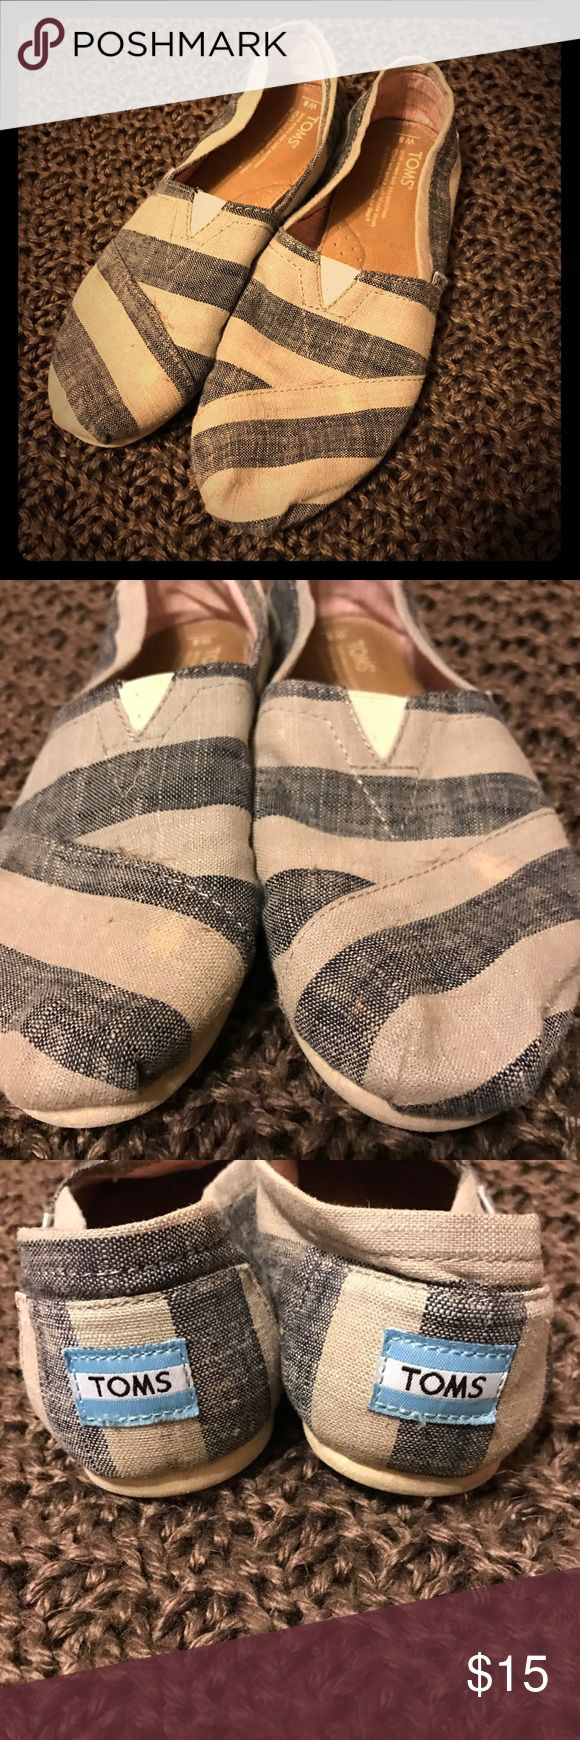 TOMS for Women TOMS for Women.. Stripped pattern.. Flaws: There is some faded bleach spots, shown in #2 picture. The spots aren't that noticeable as you can see.. No wear on the edges at the bottom, no wear on the toes, insides are still in very good clean condition.. Size 8 women's.. TOMS Shoes Flats & Loafers